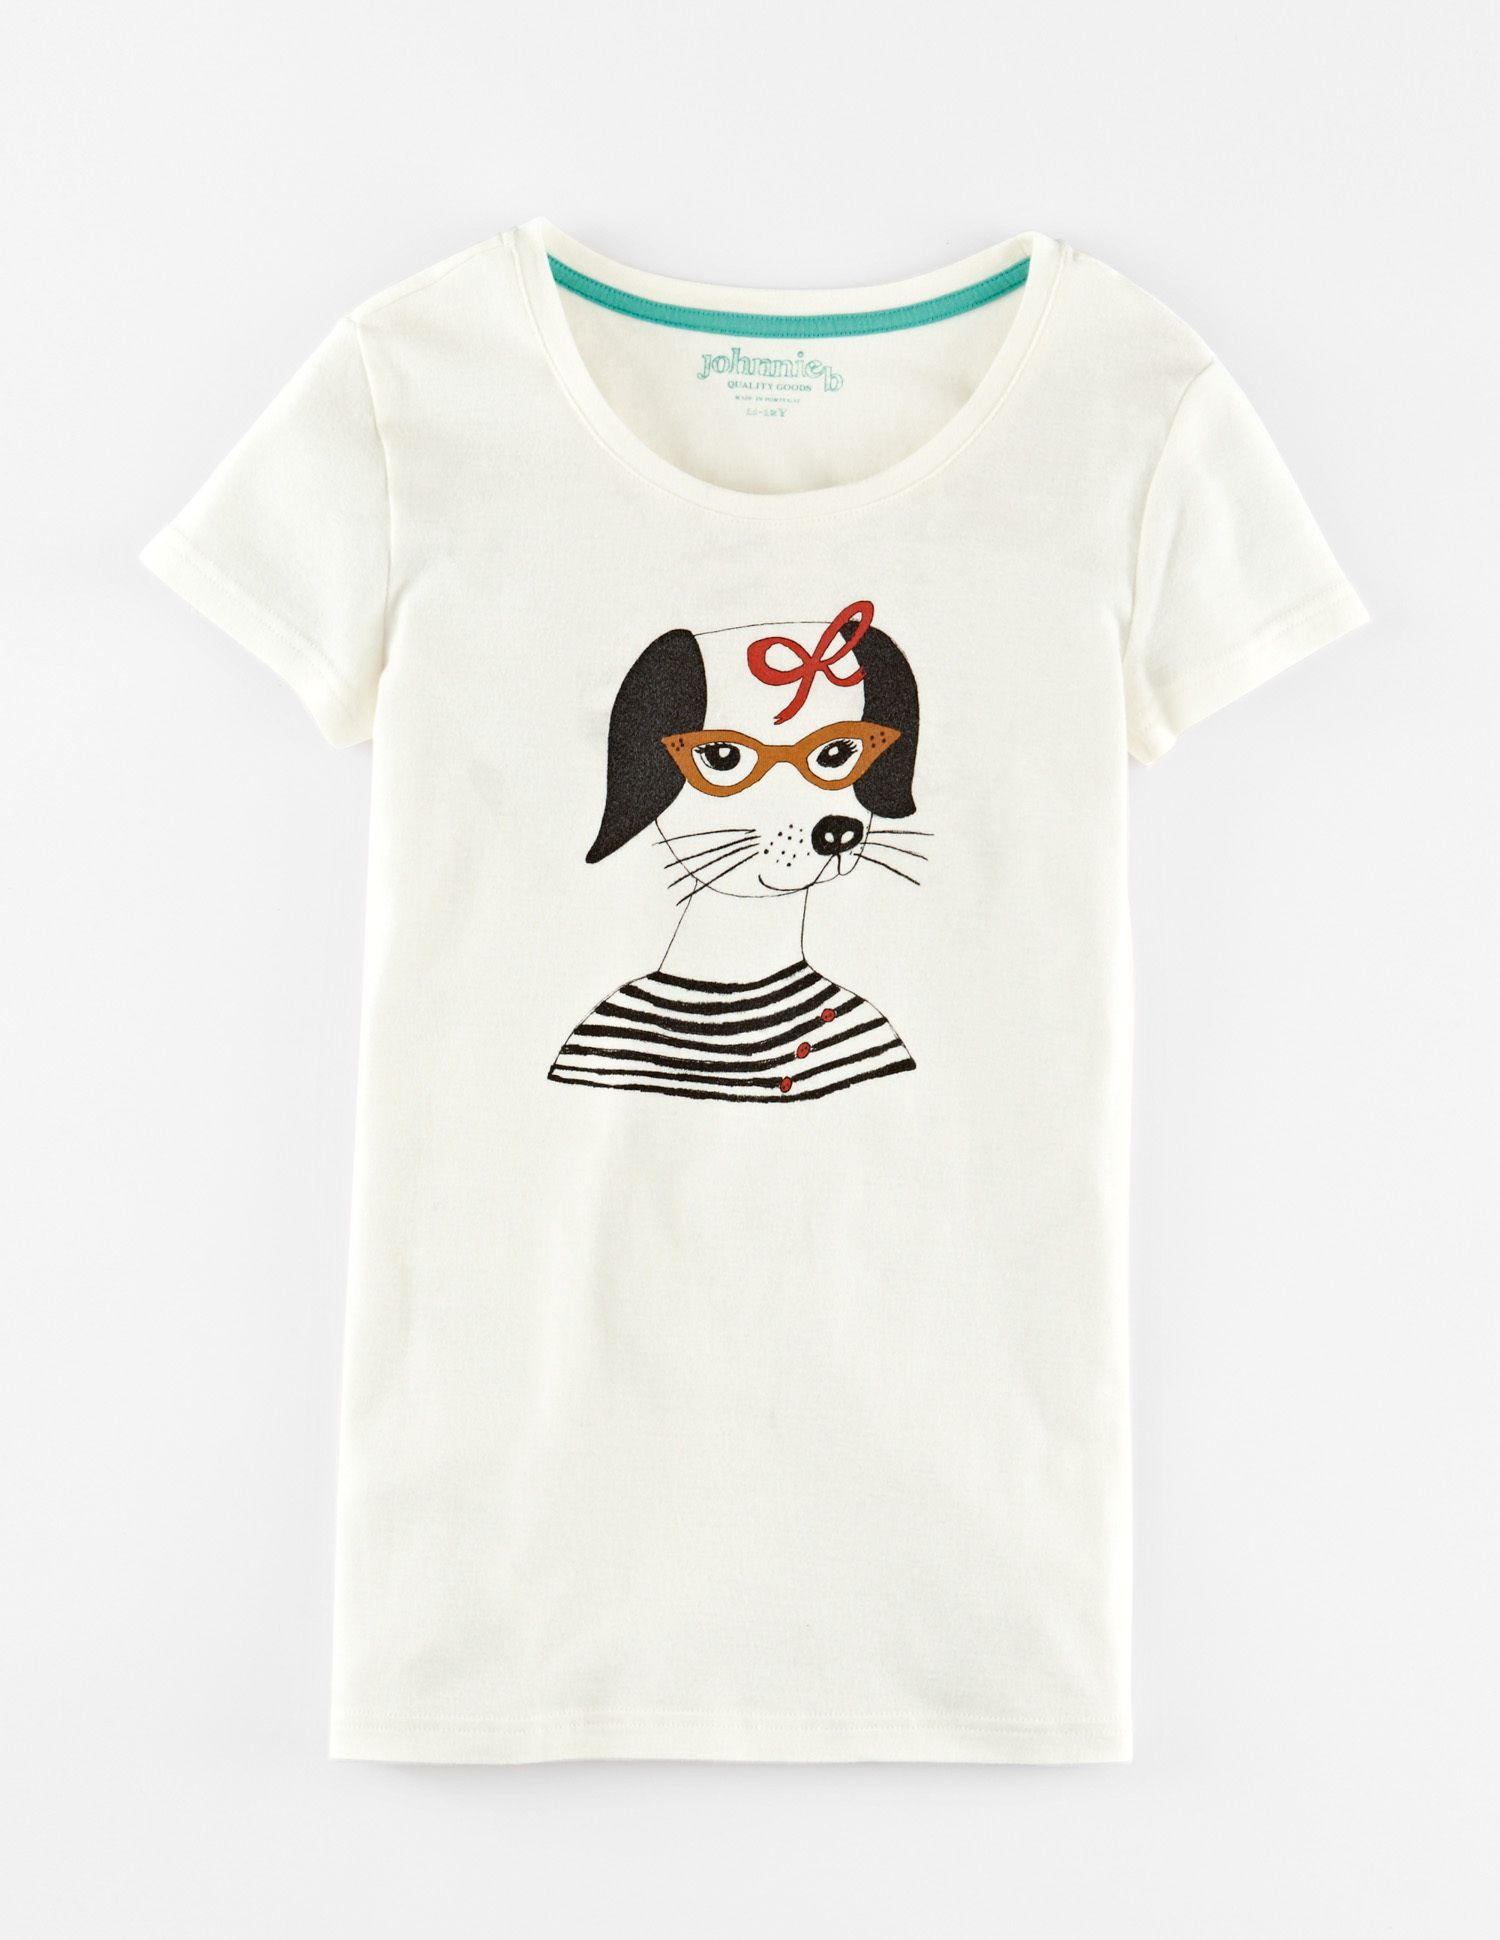 Dog T Shirt Illustrated By Me For Boden